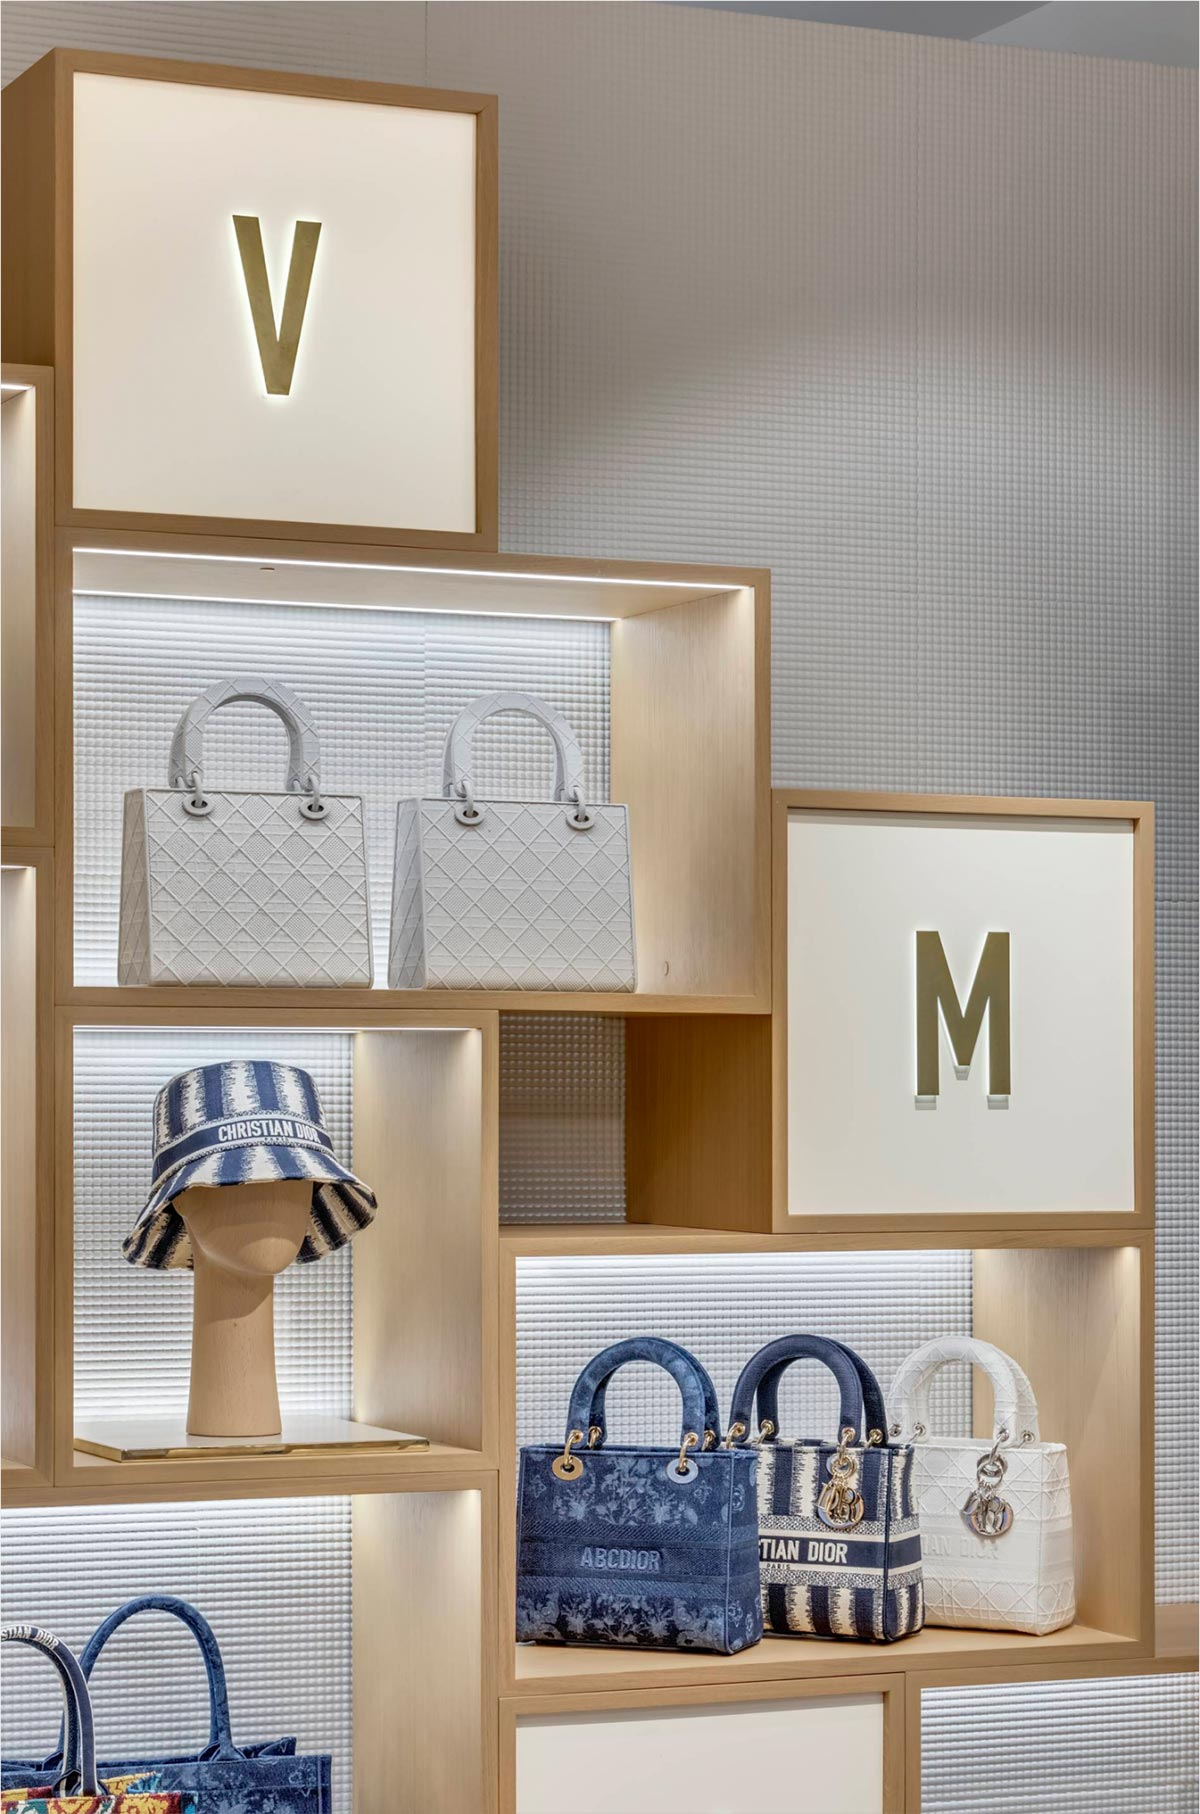 Dior pop-up store in Soho, New York-display